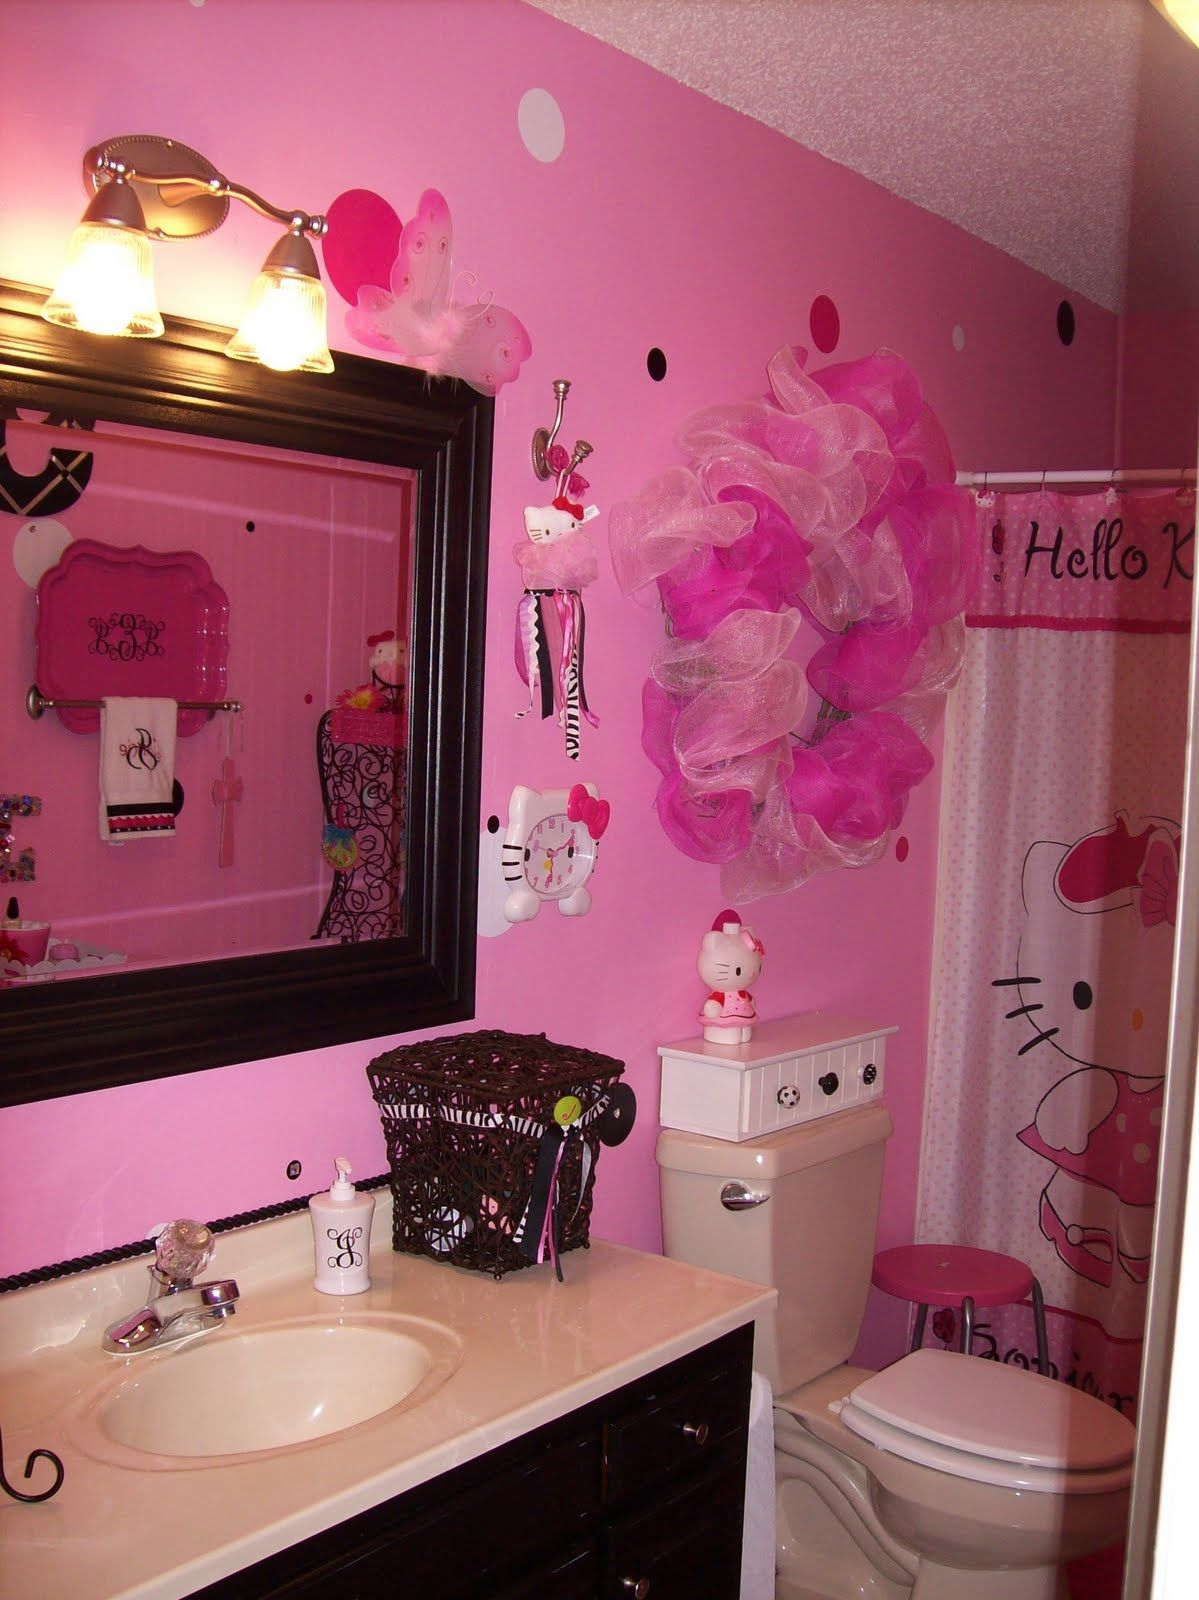 Image gallery hello kitty bathroom stuff for Bathroom decor catalogs